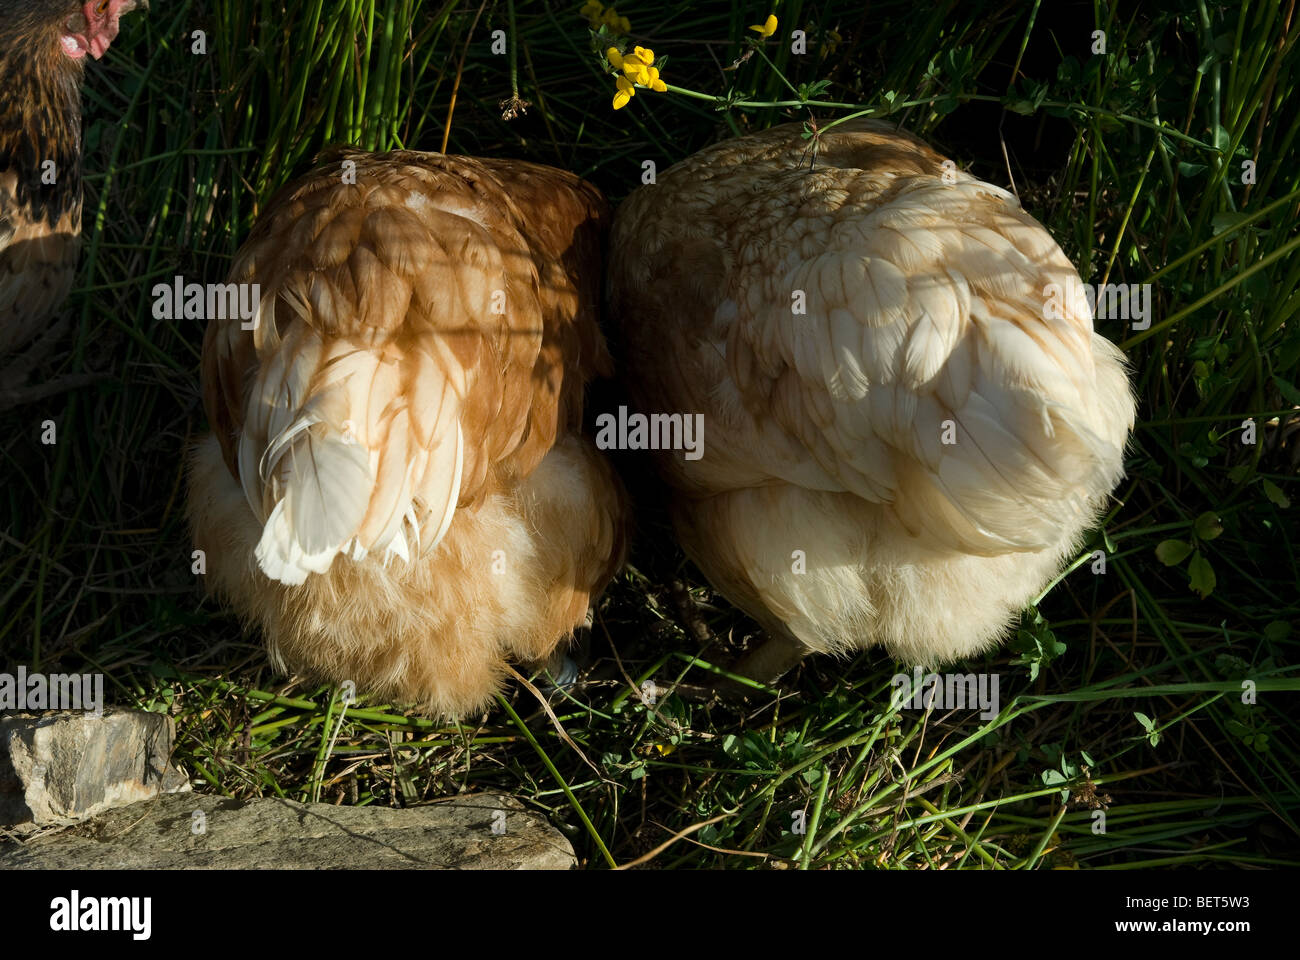 Two hens from behind - Stock Image